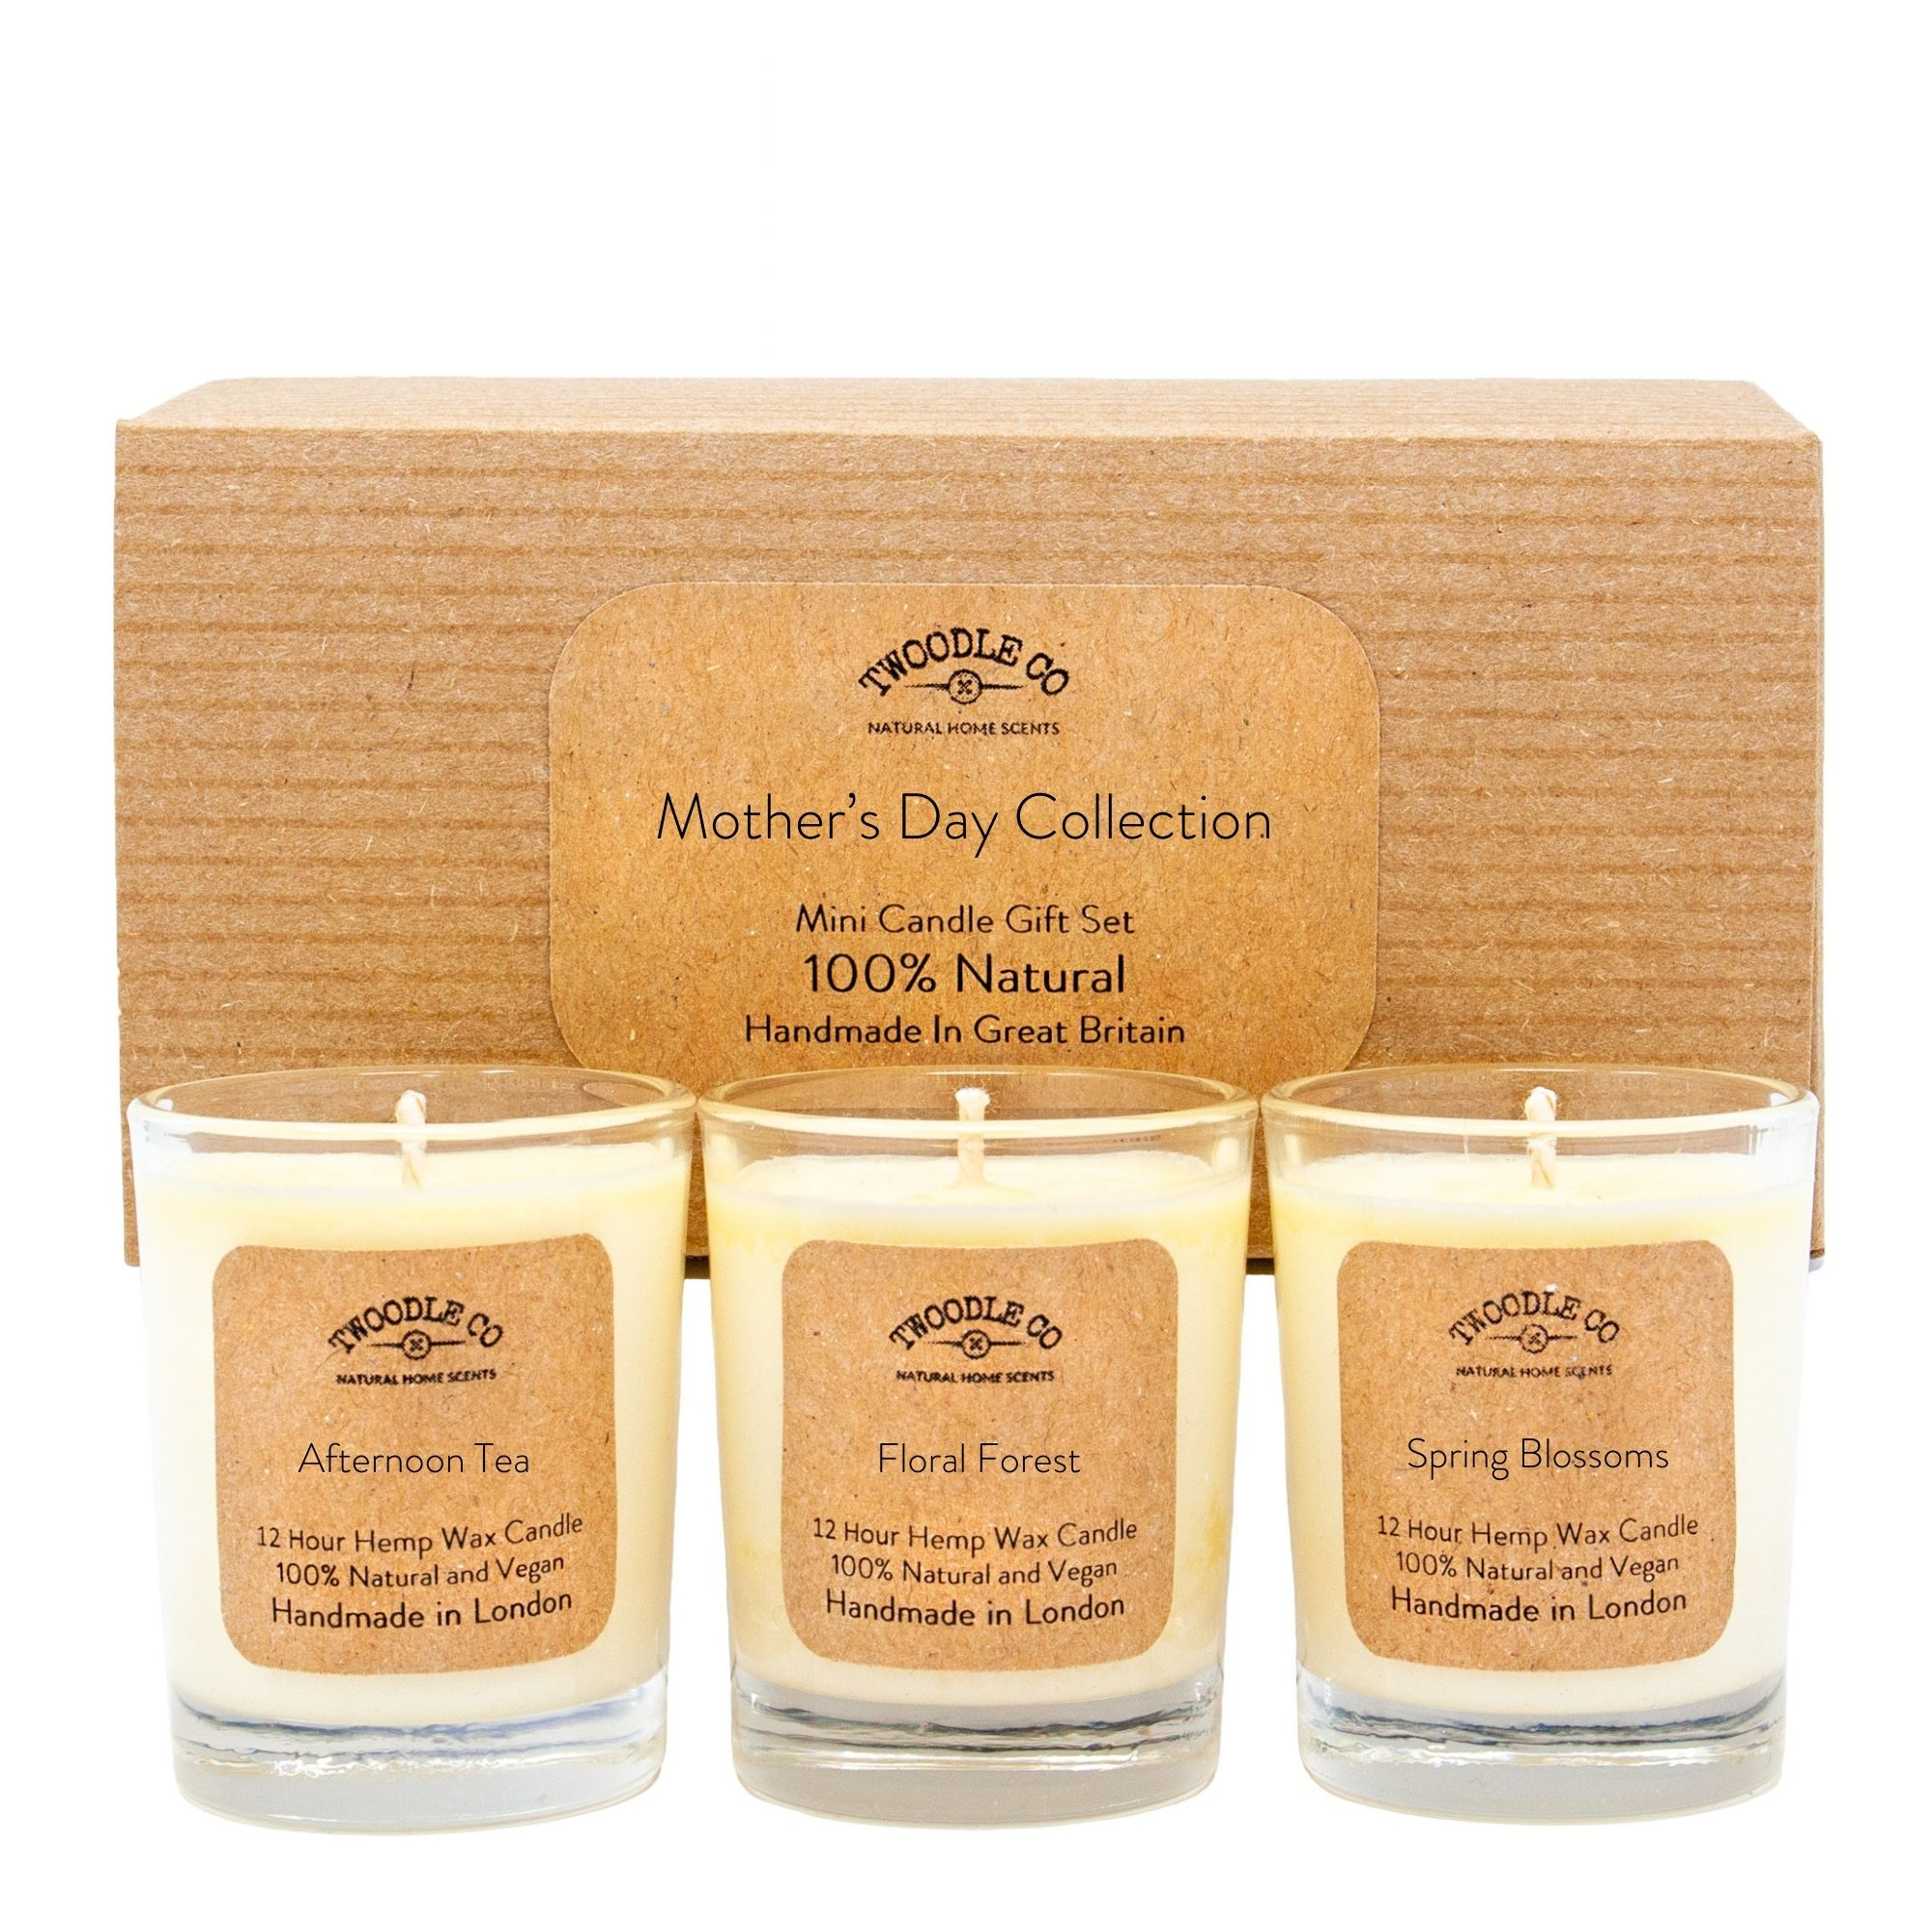 Mothers Day Collection Mini triple candle Gift Set by twoodle co natural home scents